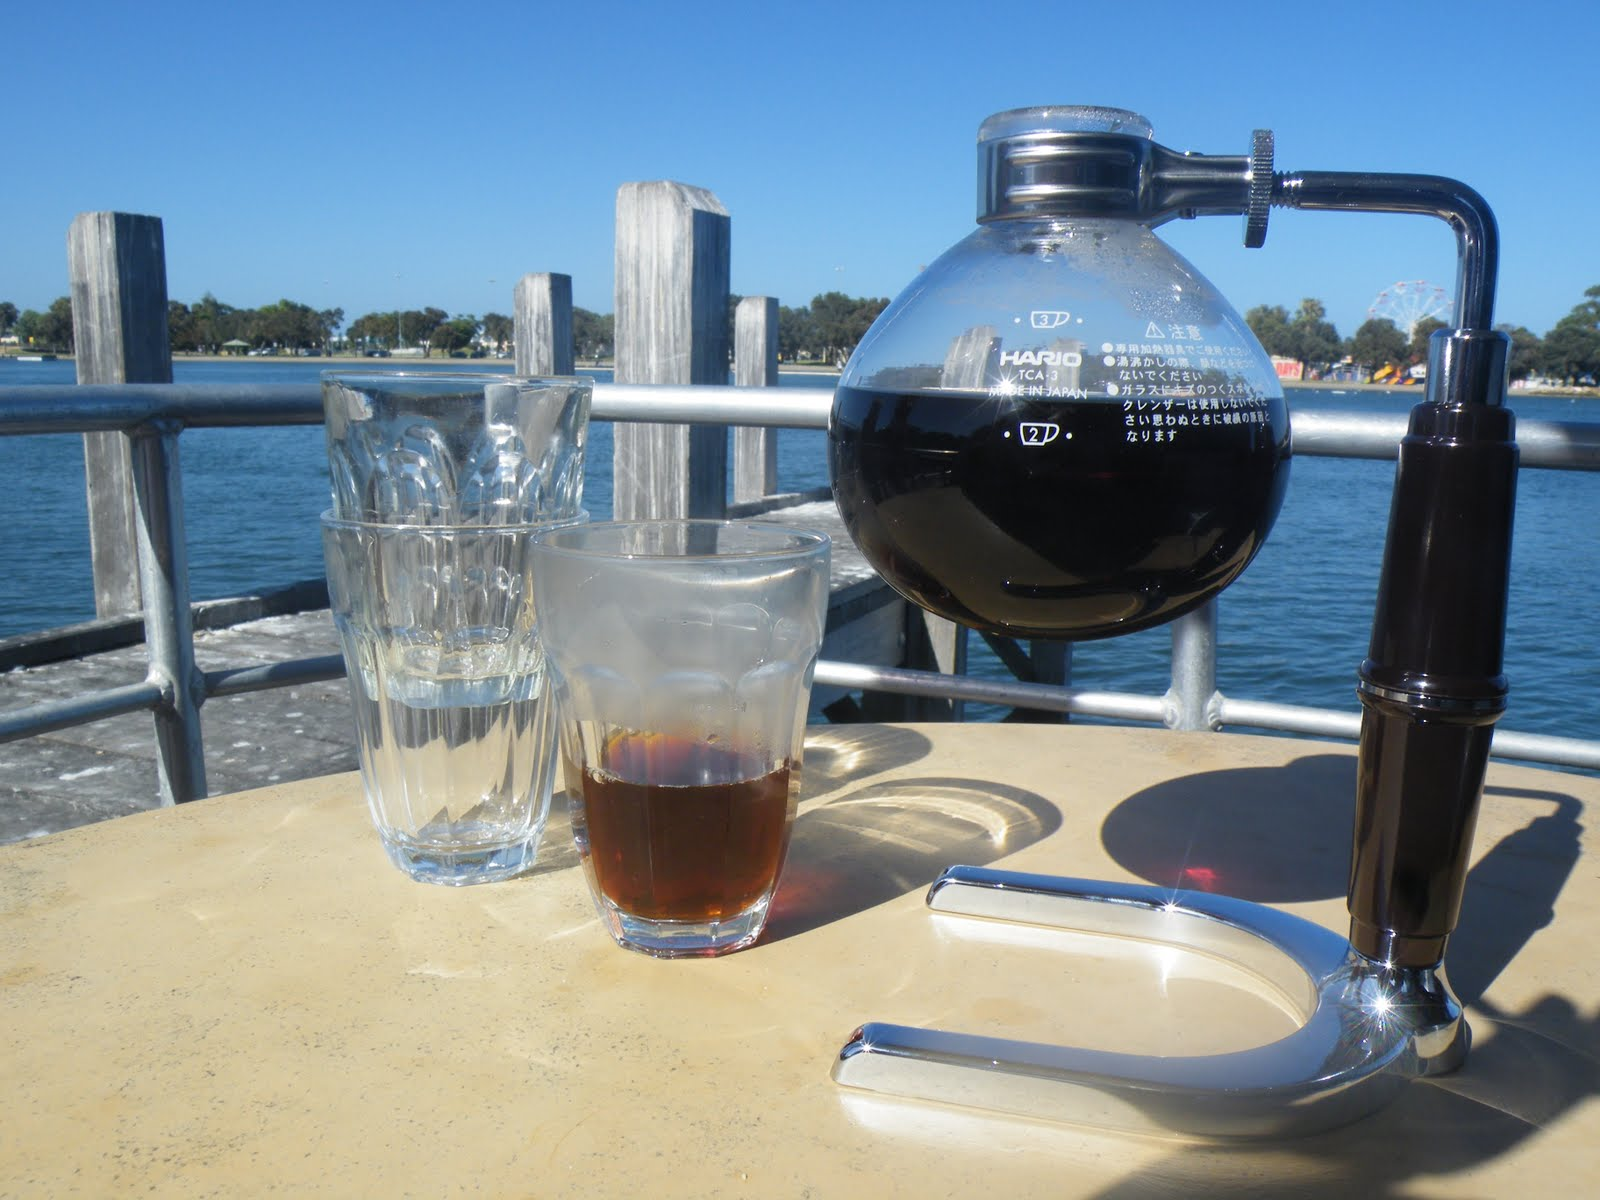 Just Roasted: Merry Christmas from Perth Western Australia!